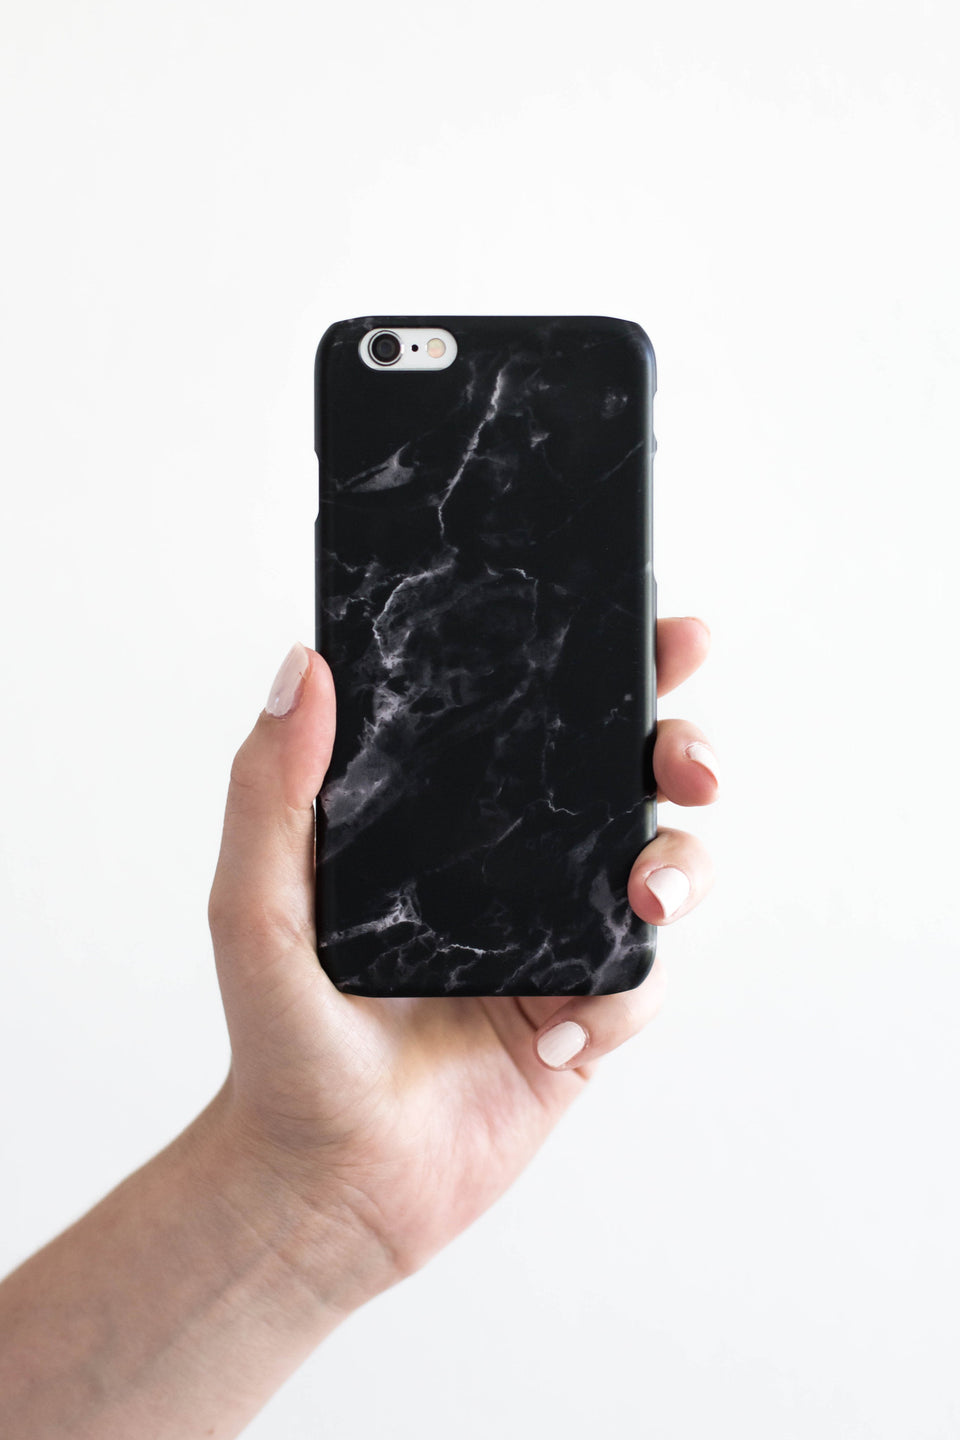 Phone Case with black marble pattern, Handyhülle schwarzer Marmor